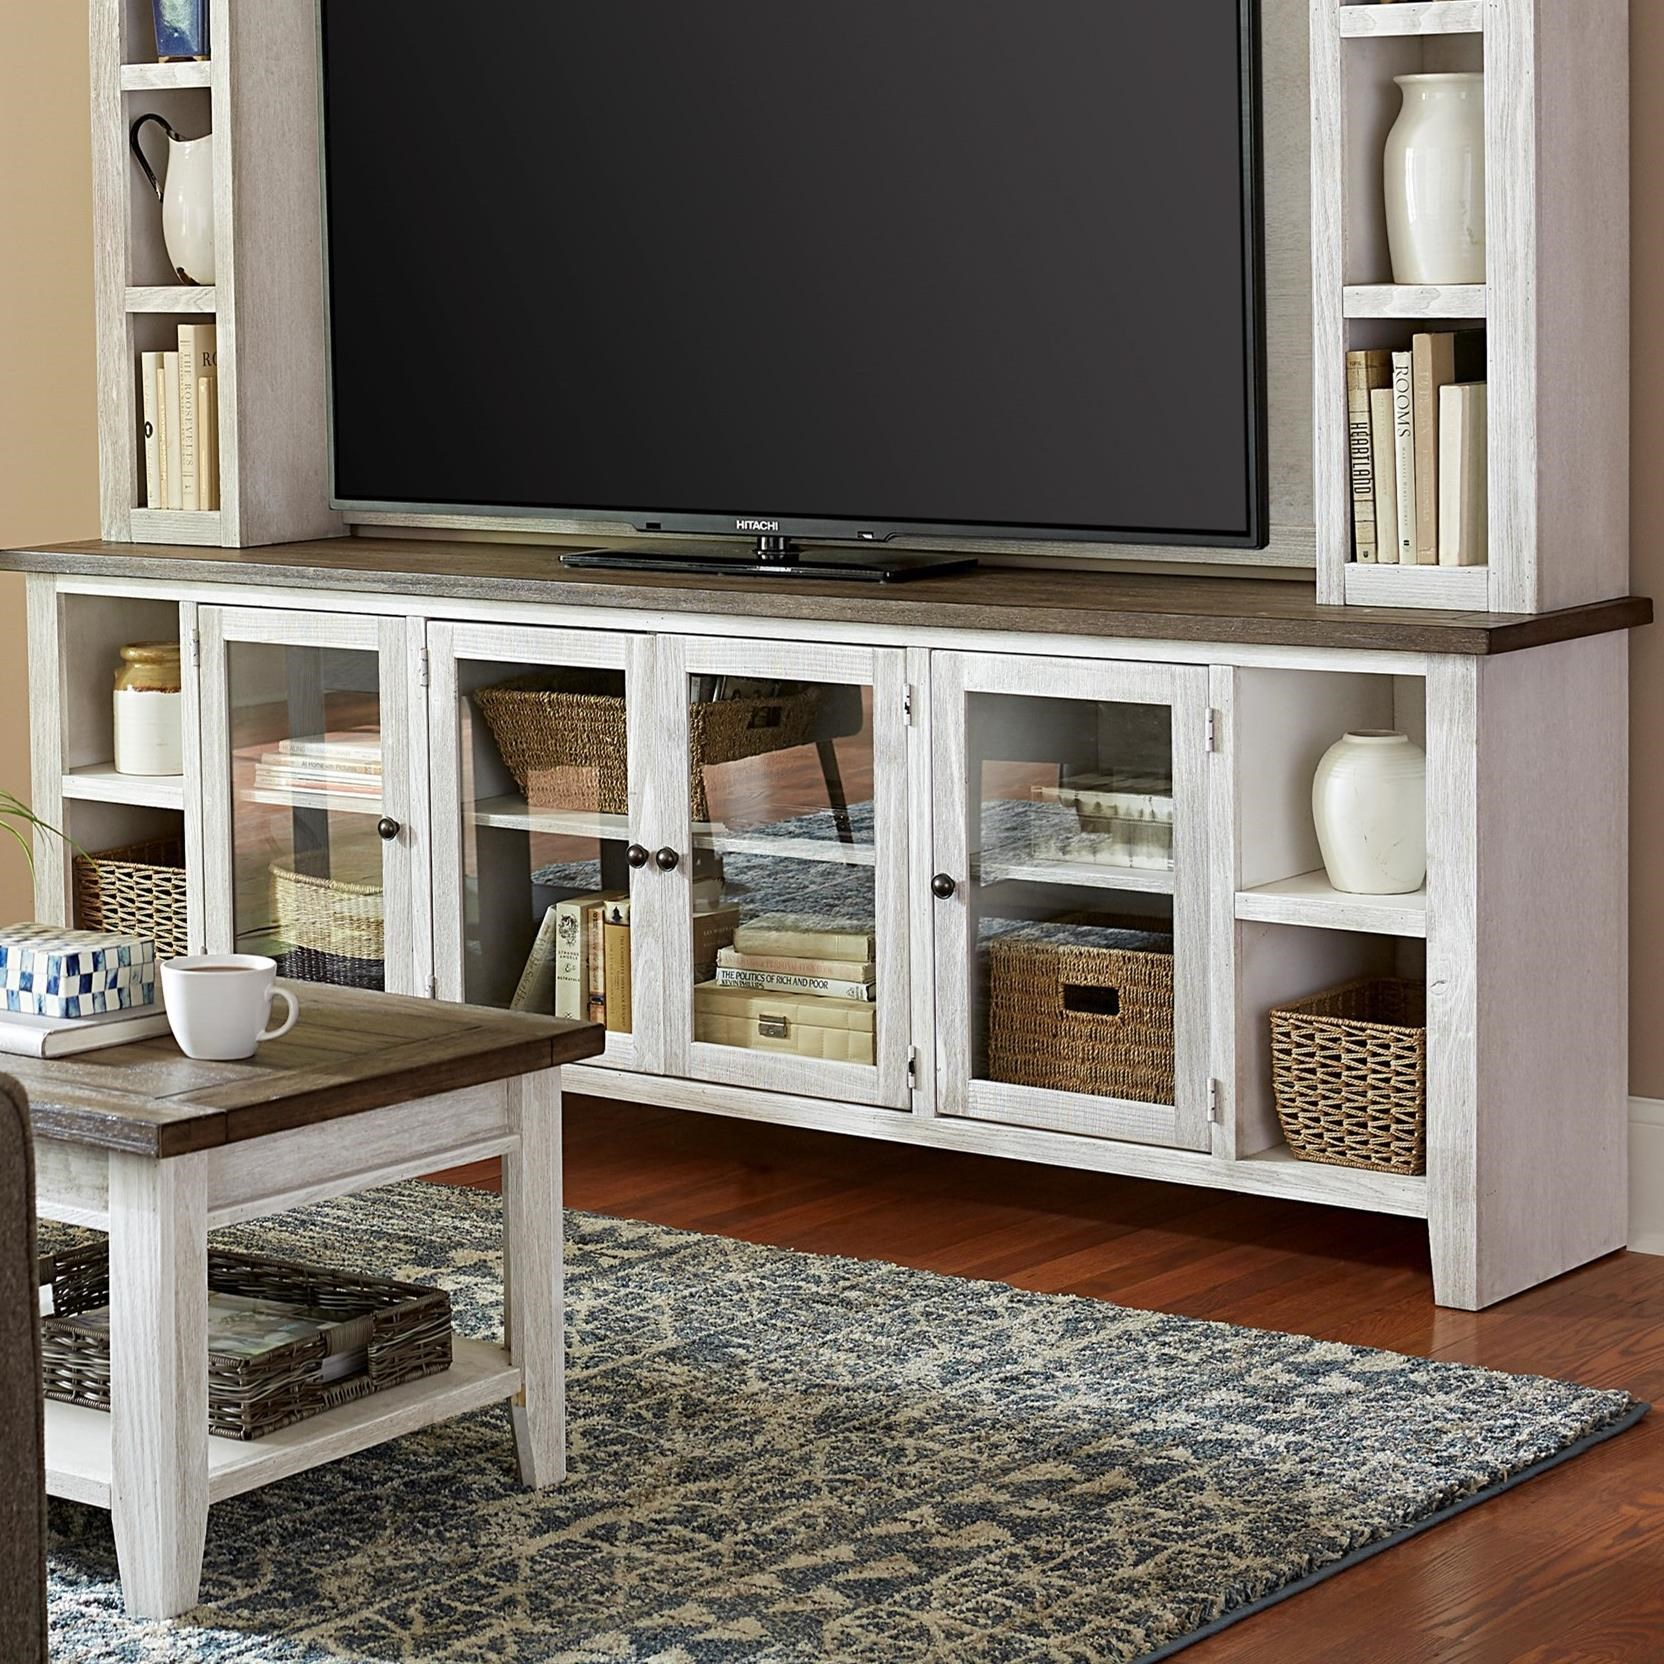 "Eastport 97"" Console by Aspenhome at Stoney Creek Furniture"